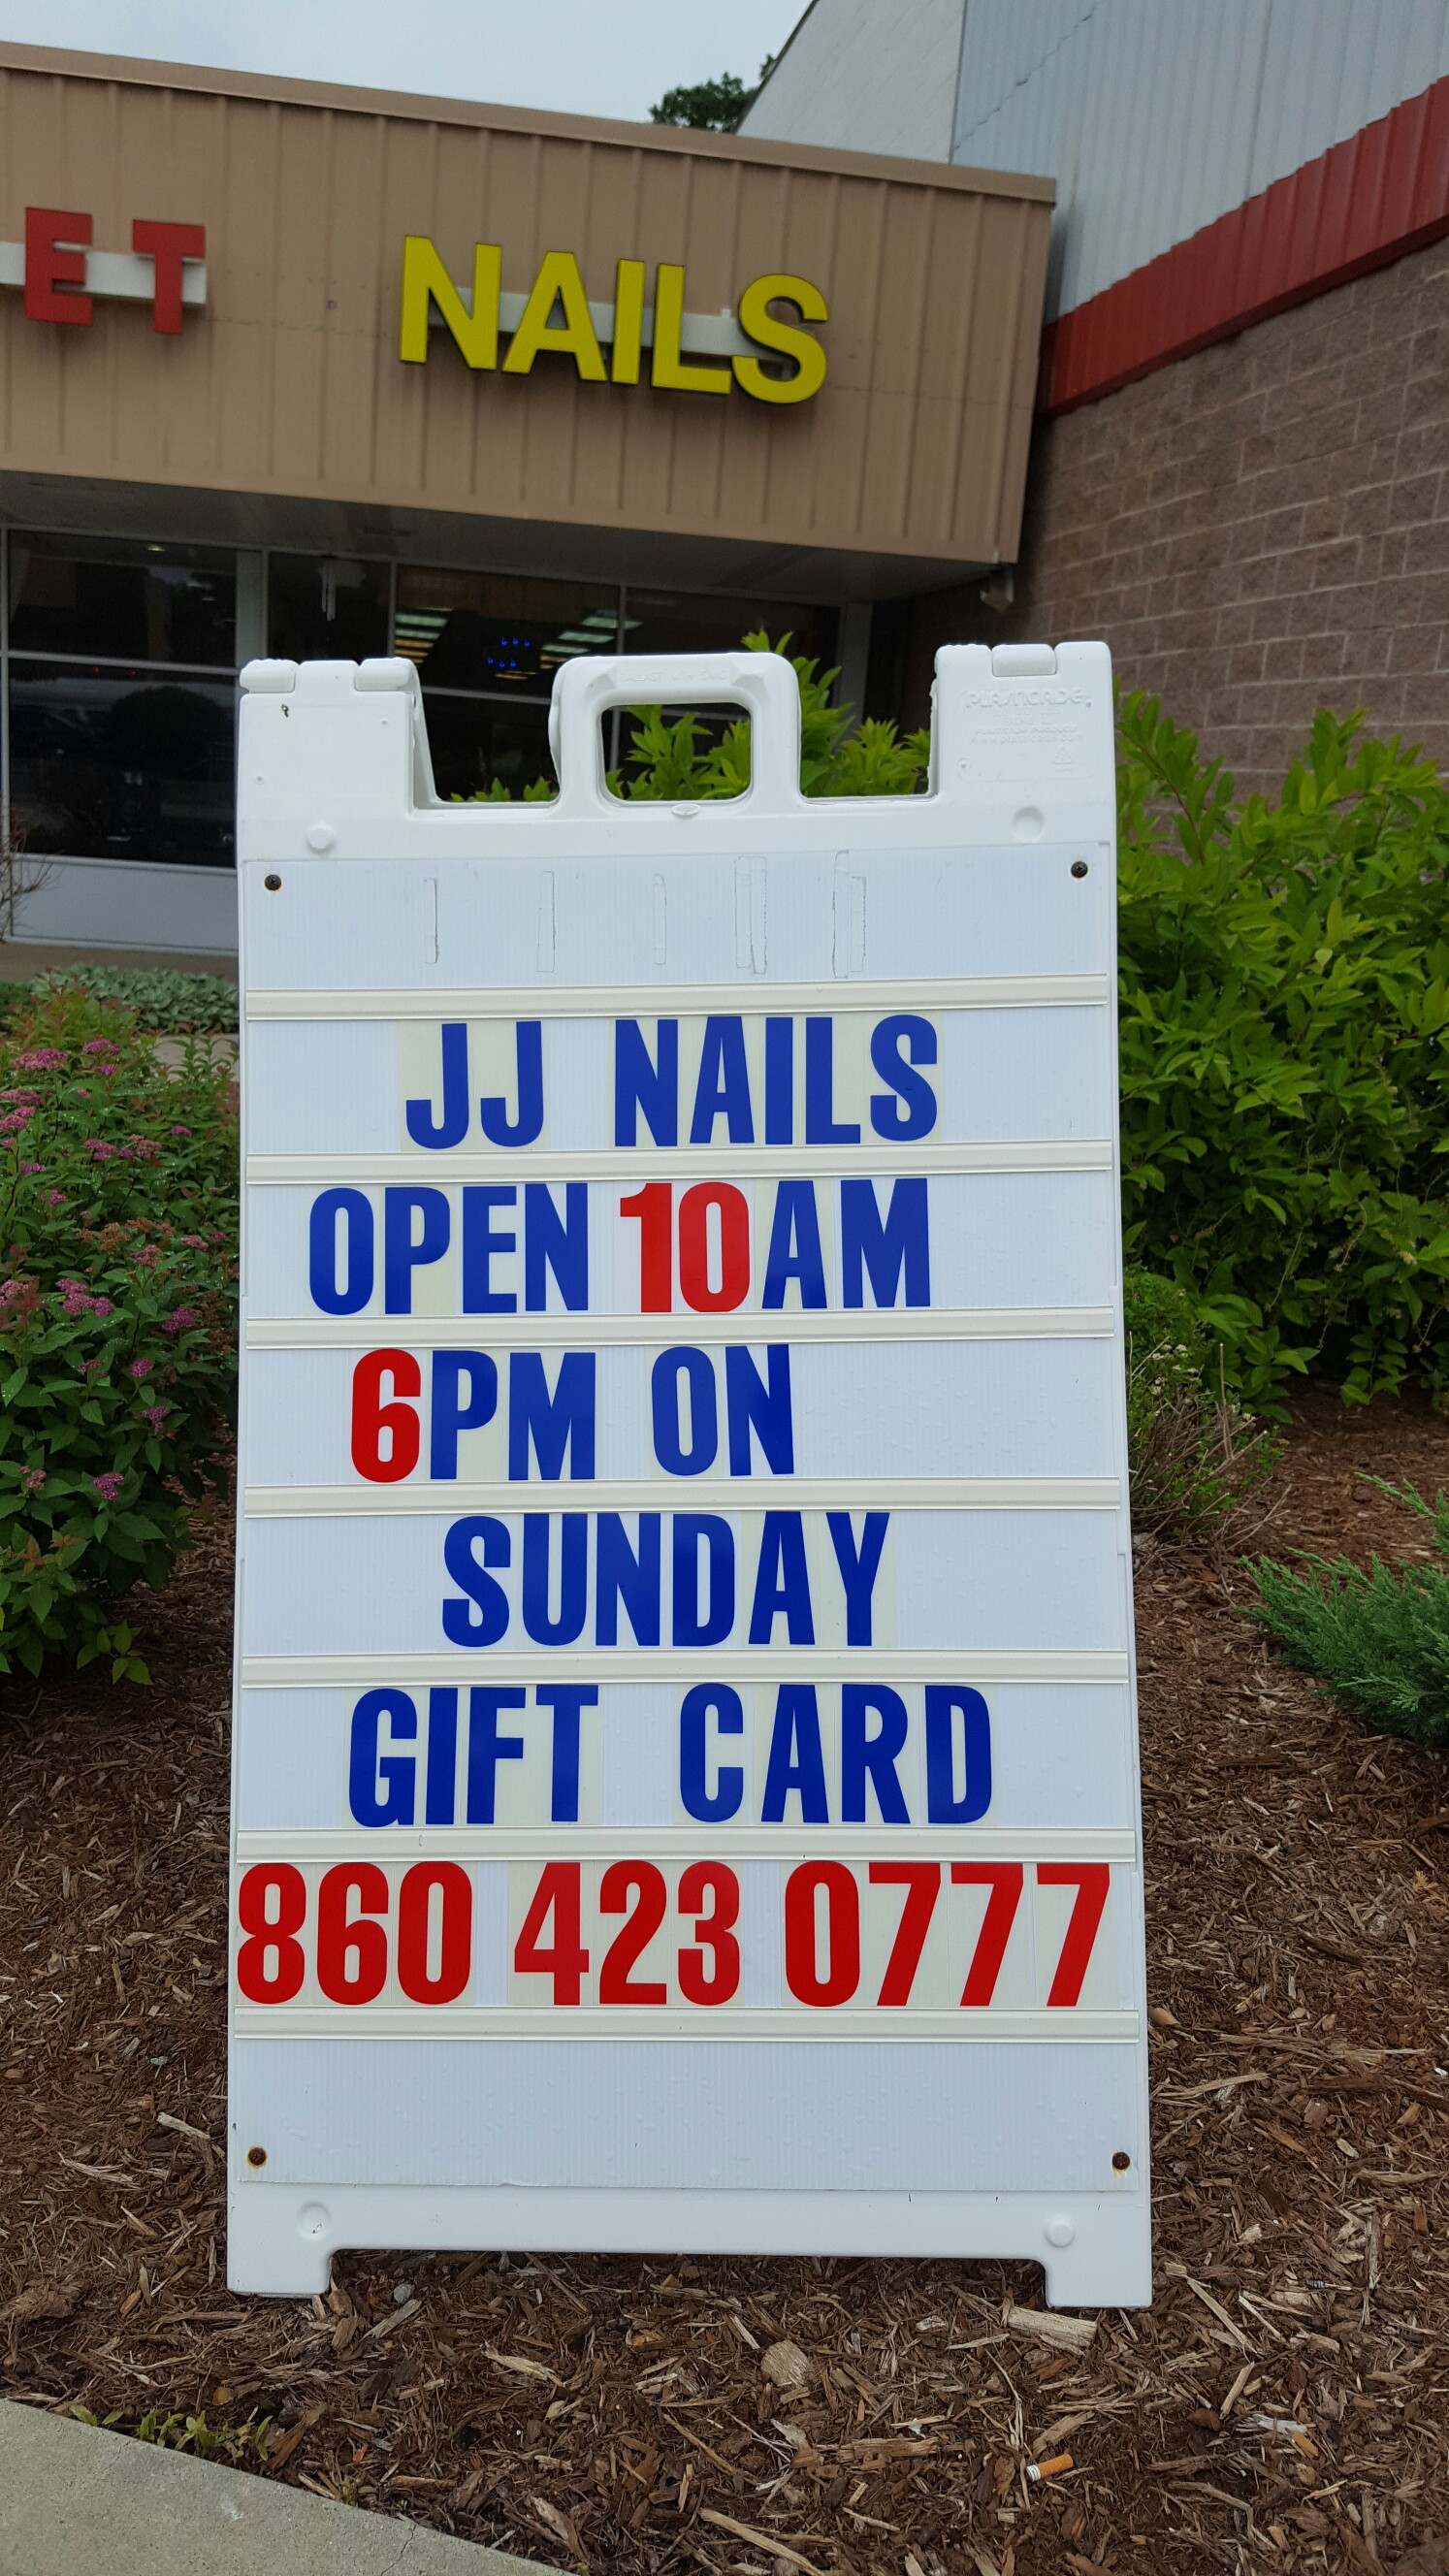 Jj Nails & Spa 1589 Main St, Willimantic, CT 06226 - YP.com